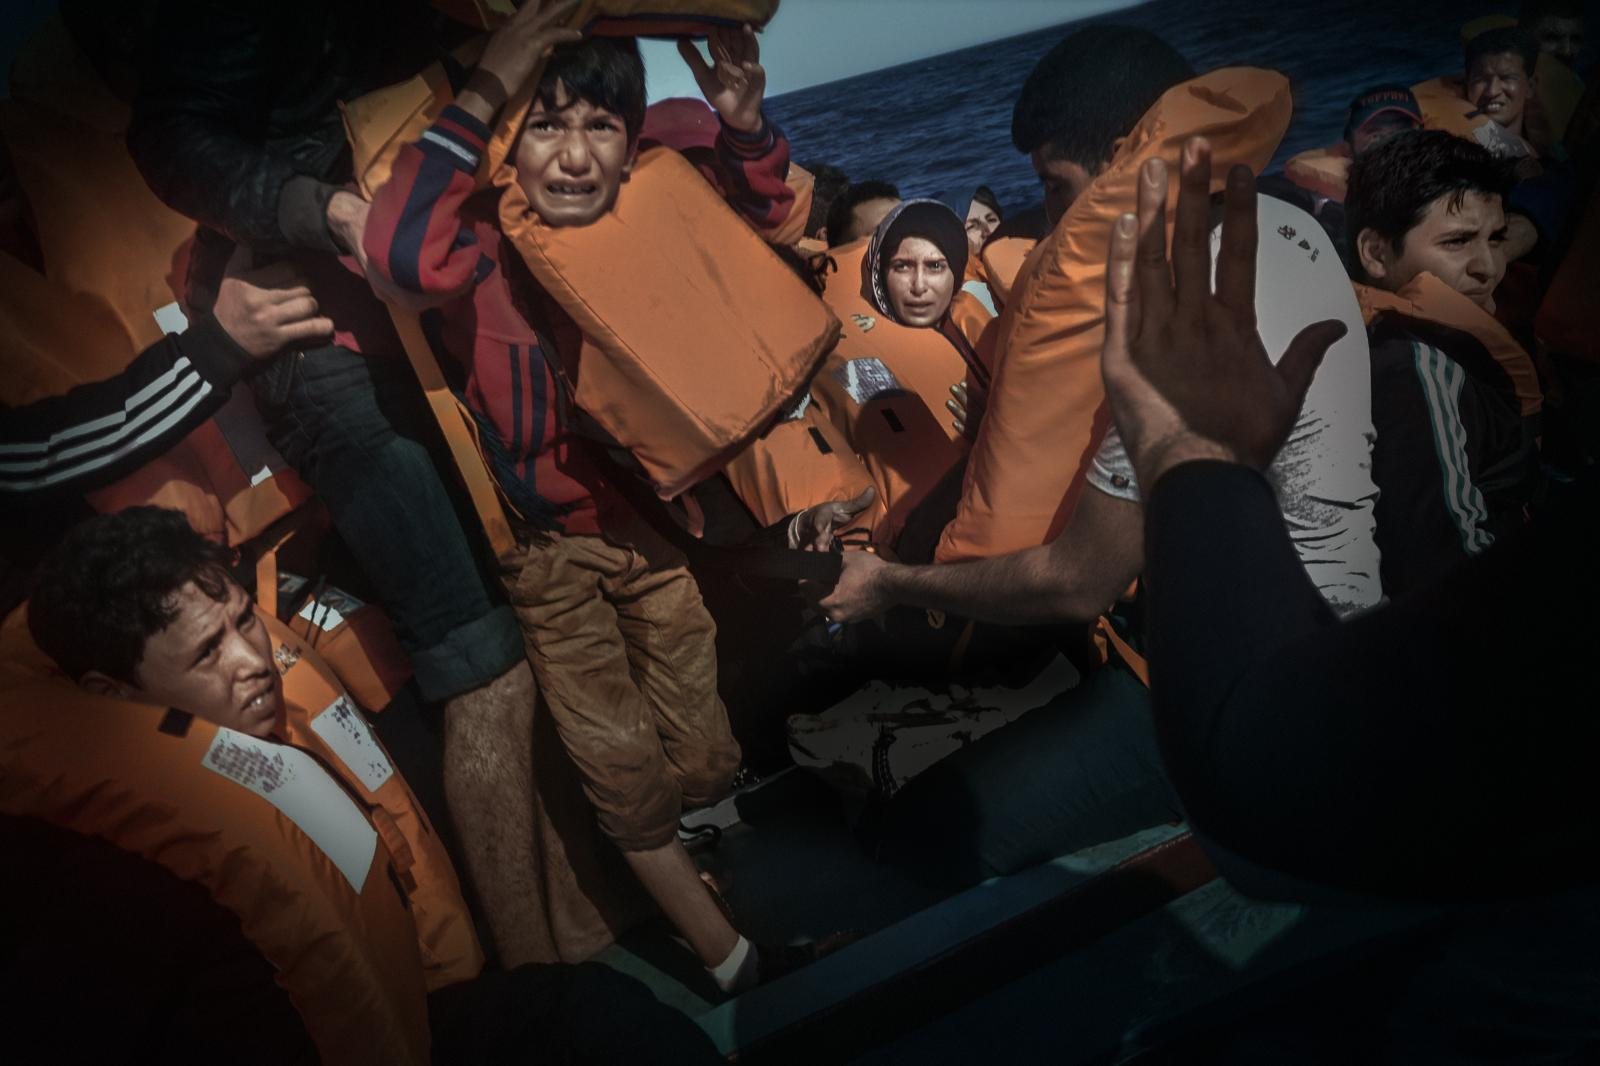 A Syrian boy cries out in pure panic while a crewmember urges passengers to stay calm during a rescue operation on the Mediterranean Sea carried out by members of the NGO Open Arms.